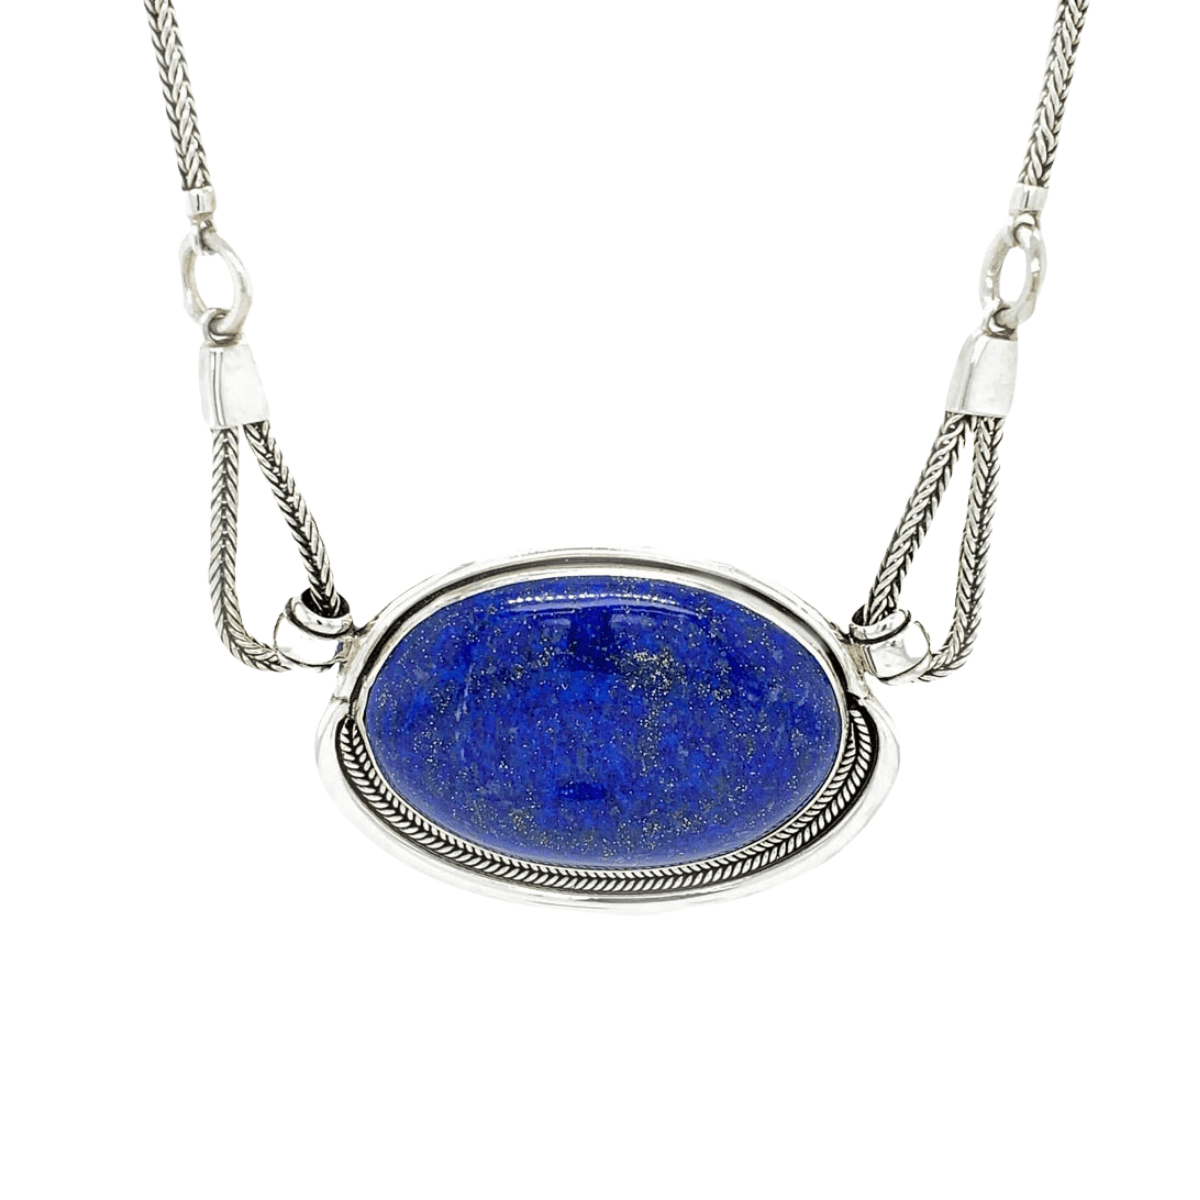 Large Lapis Lazuli Medallion & Sterling Silver Necklace - Qinti - The Peruvian Shop